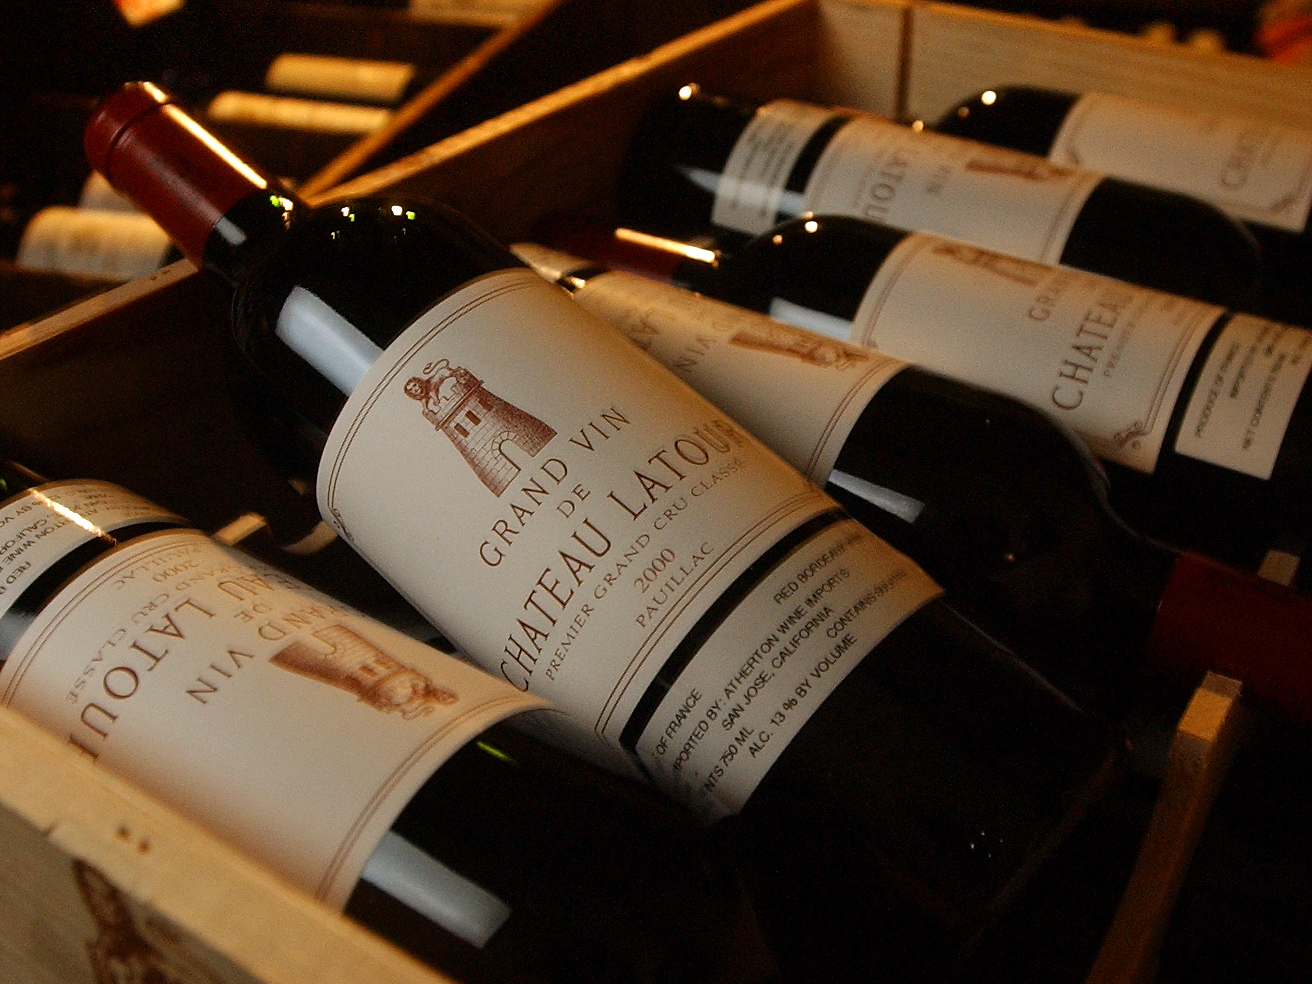 4/11/2003 – Cases of Bordeaux from Chateau Latour stacked up at Du Vin in West Hollywood. The highly